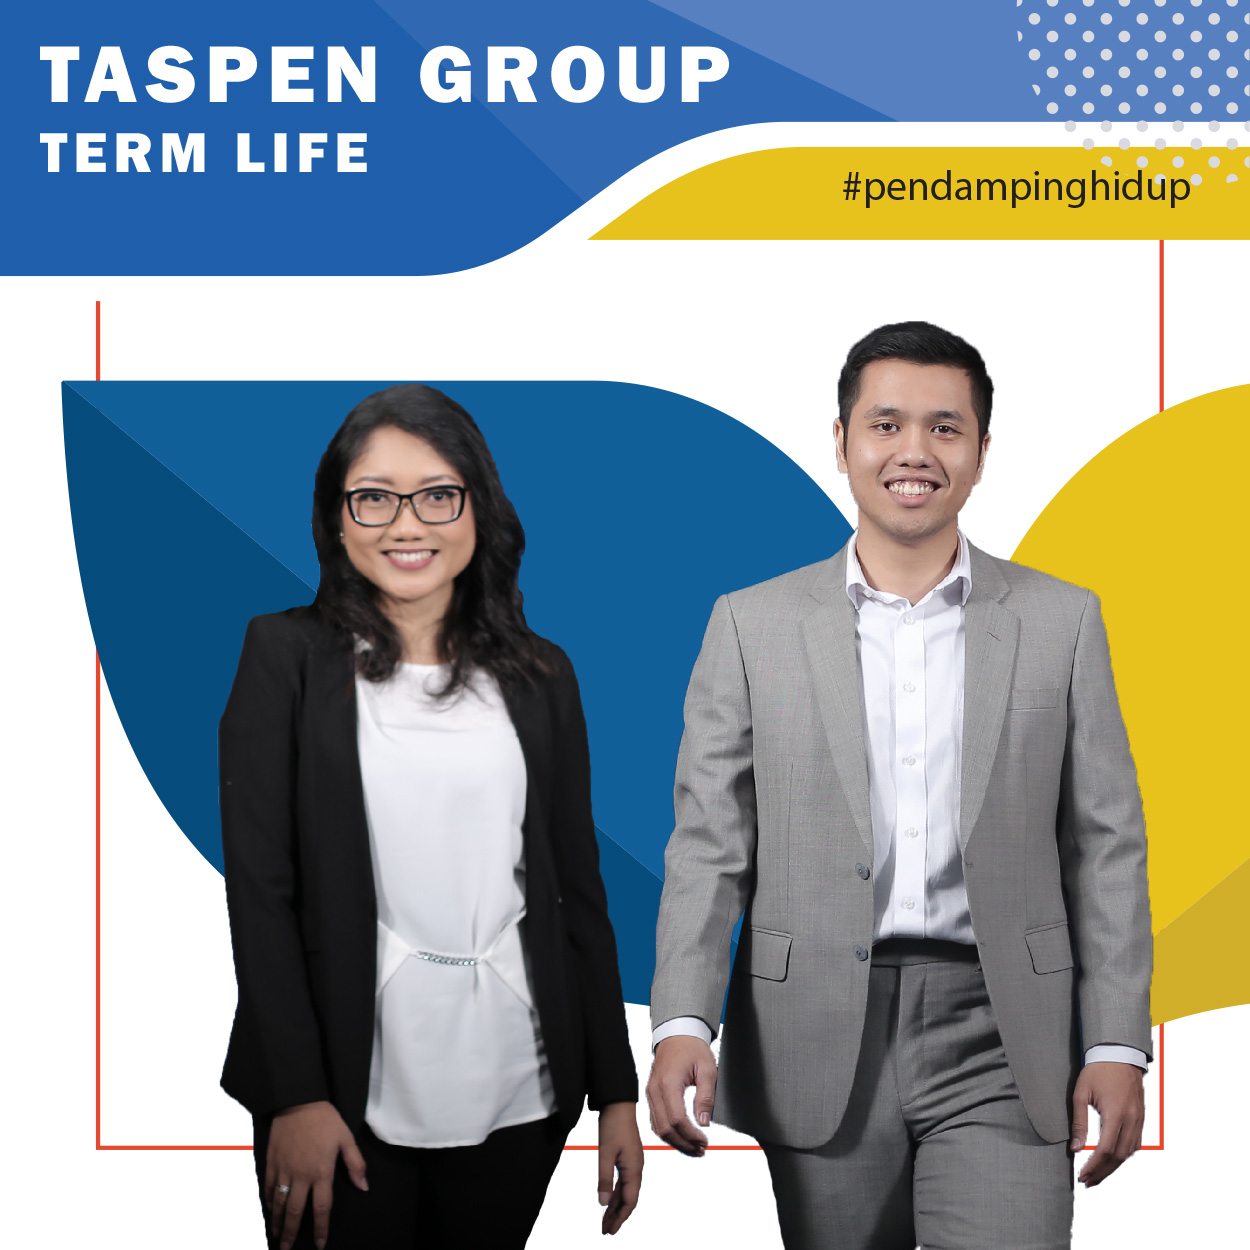 Taspen Group Term Life